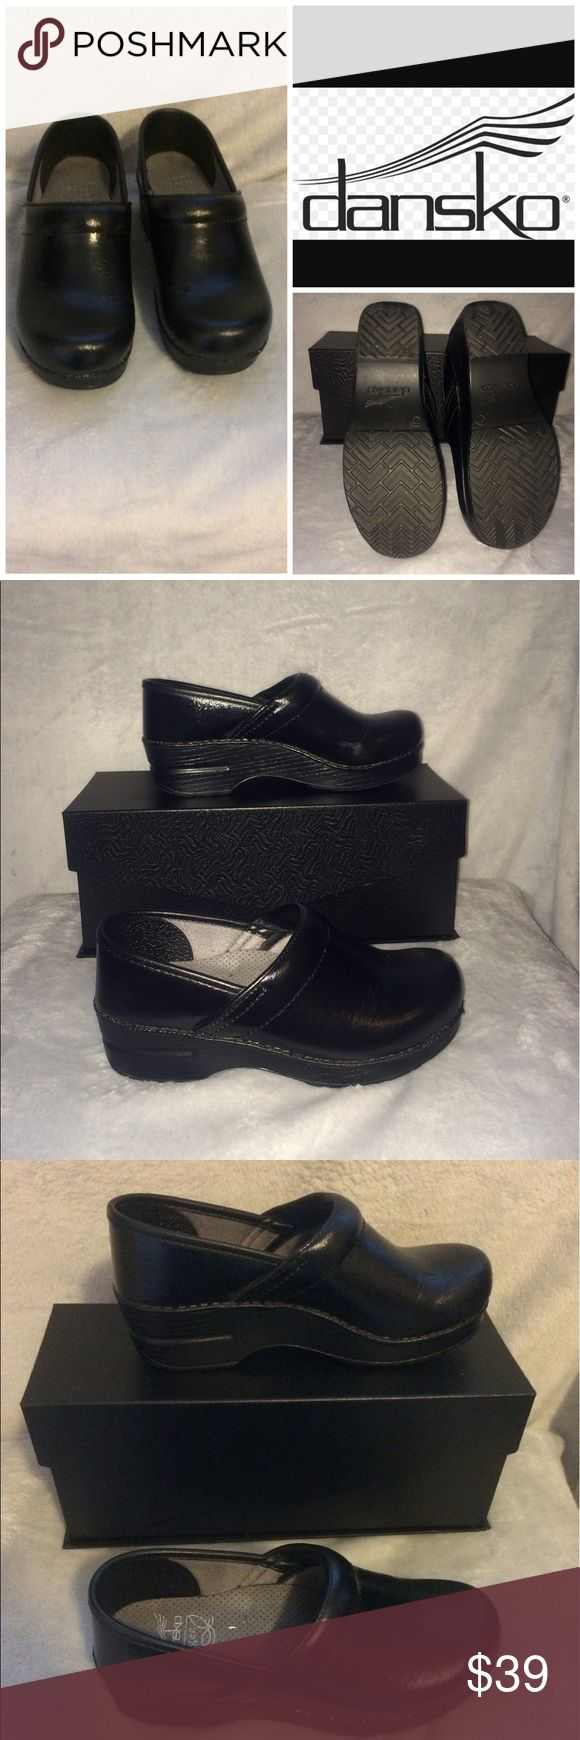 DANSKO Vegan Black Shiny Clogs, SZ 37 EUC 6.5/7 For sale: DANSKO Vegan black shiny professional/occupational/nursing work shoes/clogs are in excellent pre-owned condition. Size: 37 (6.5/7).  Interested? Like, share, bundle, buy! Dansko Shoes Mules & Clogs